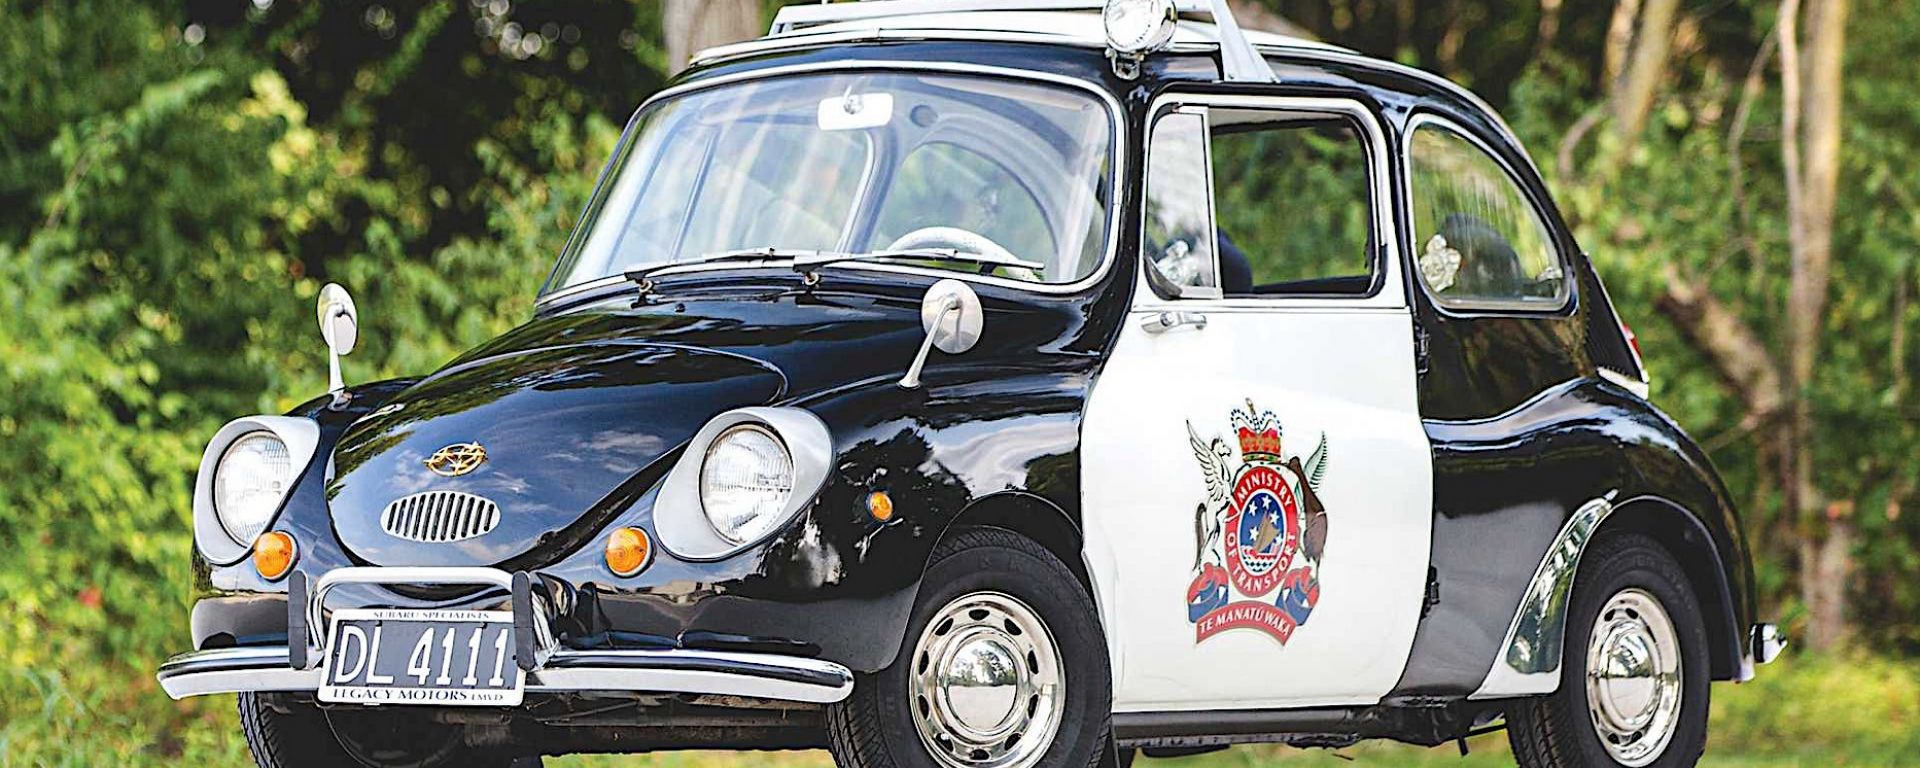 Subaru 360 police car all'asta